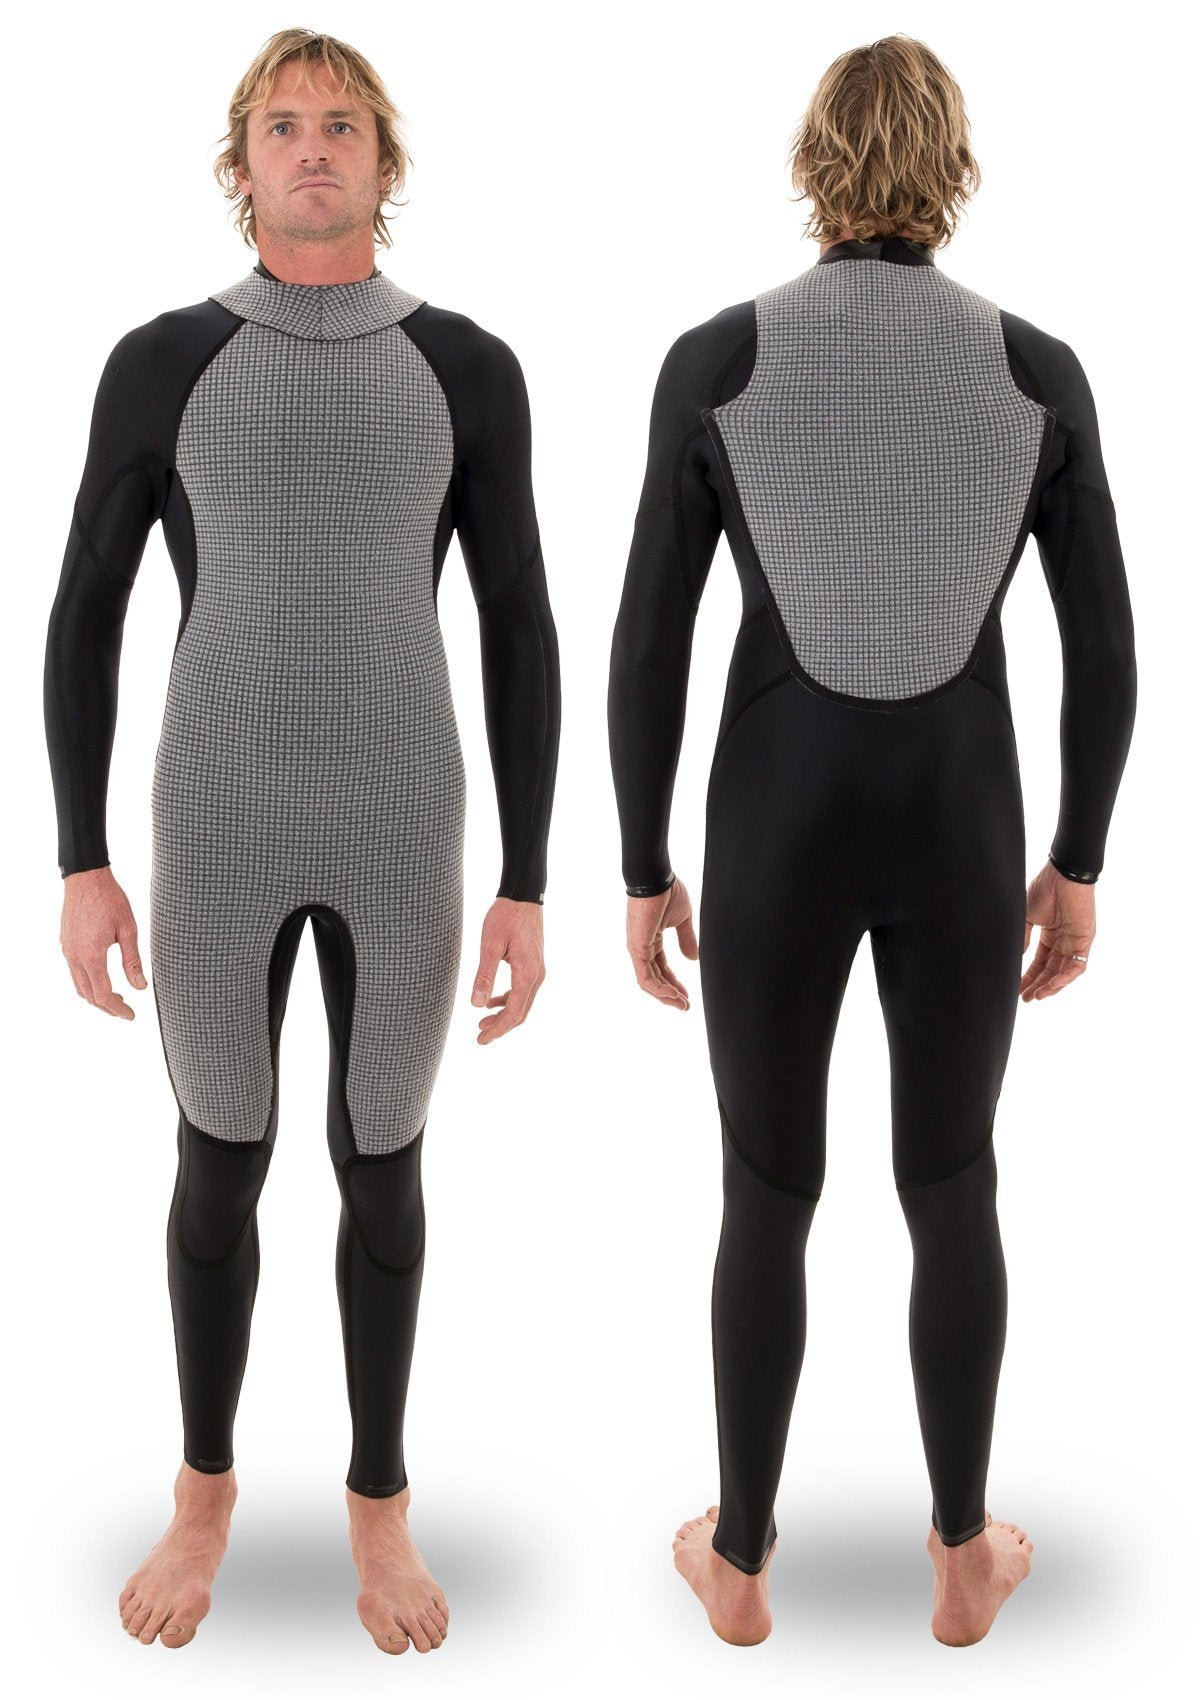 needessentials 4/3 back zip thermal wetsuit laurie towner surfing winter non branded big waves